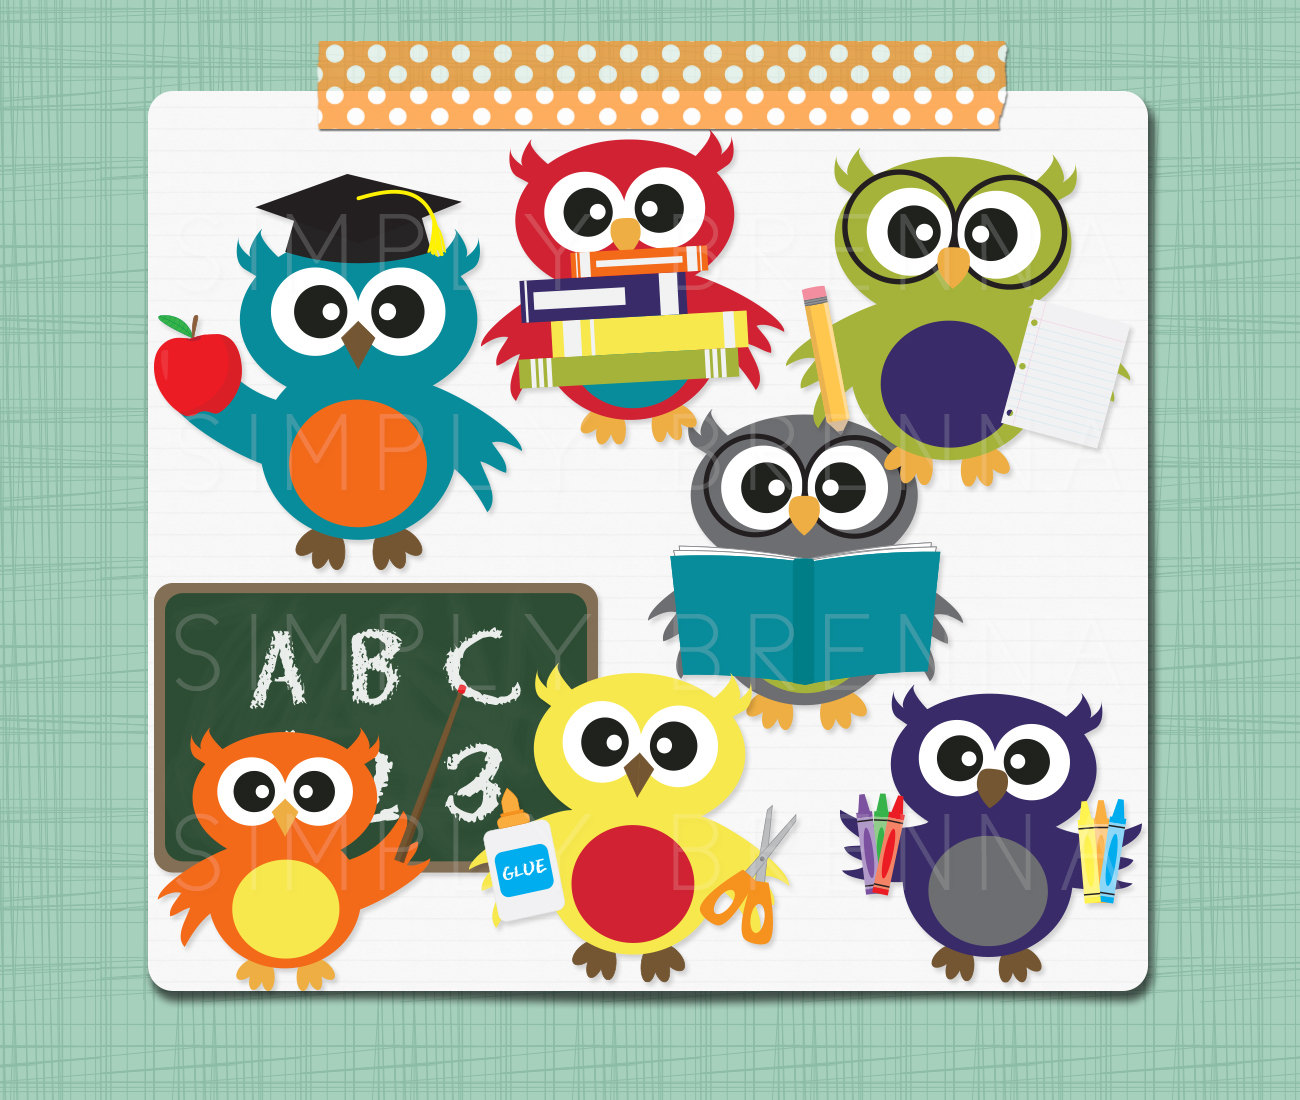 Free clipart for teachers for commercial use jpg black and white stock Commercial clipart for teachers - ClipartFest jpg black and white stock